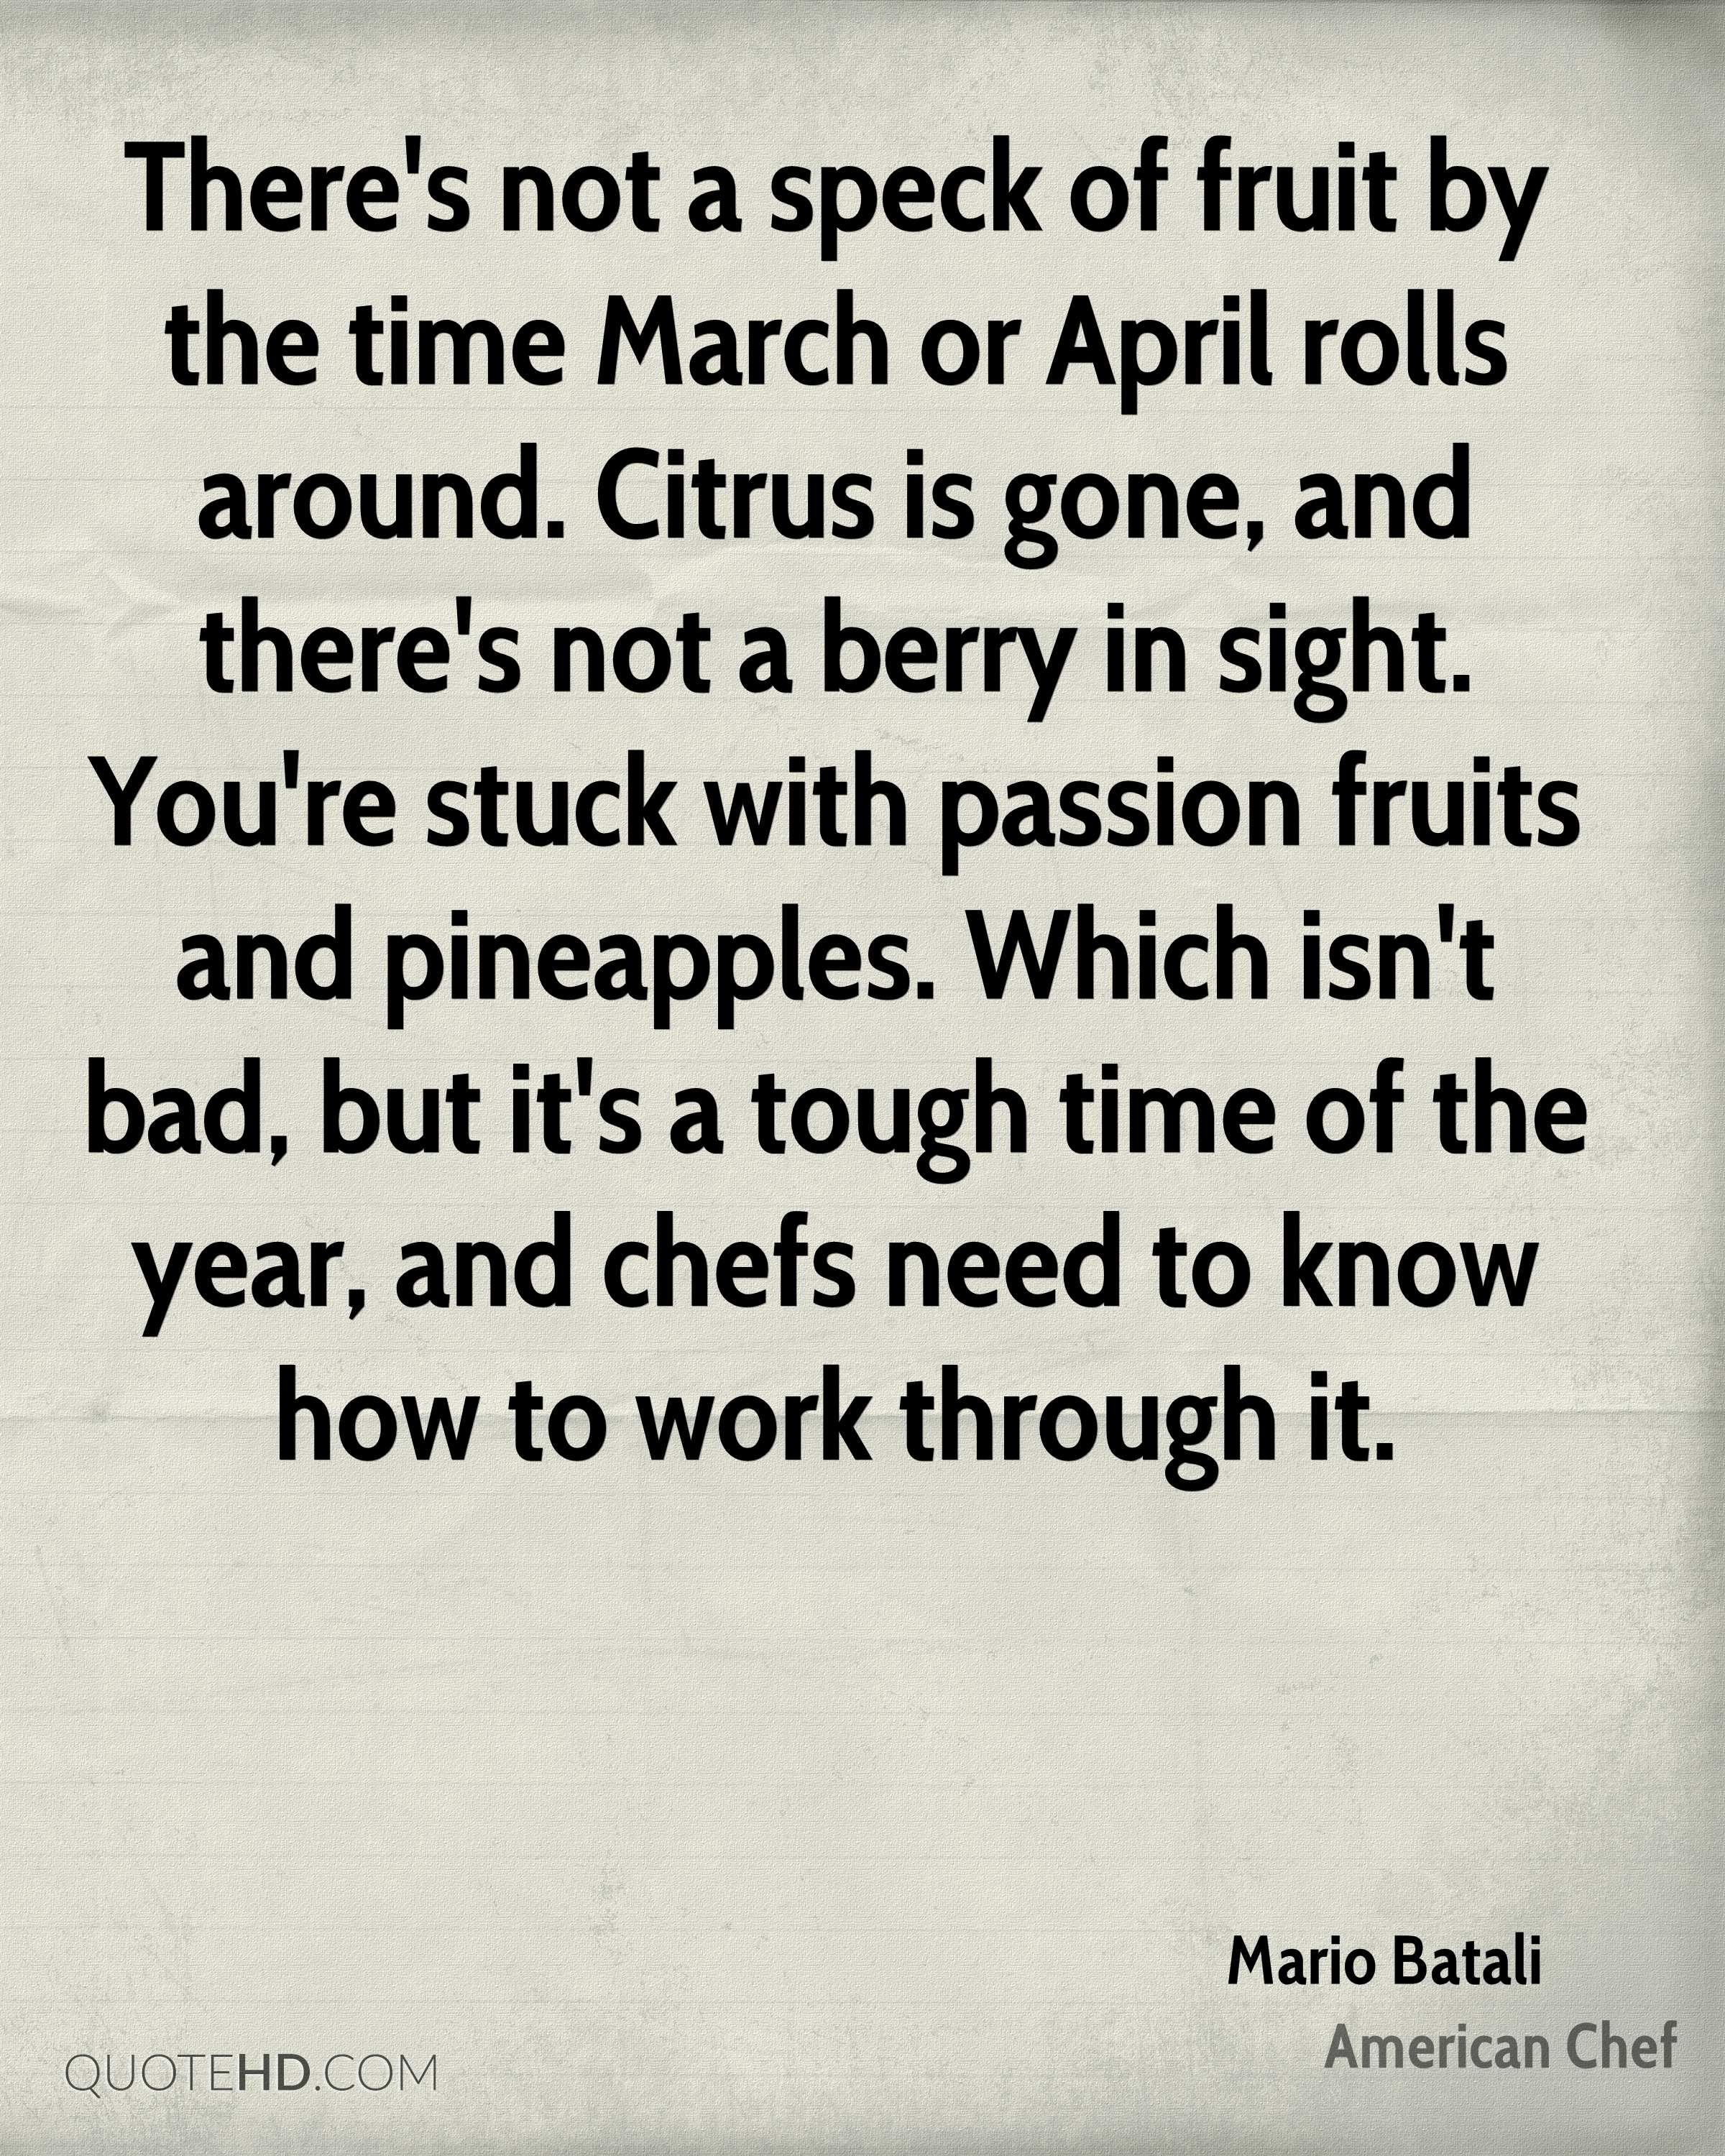 There's not a speck of fruit by the time March or April rolls around. Citrus is gone, and there's not a berry in sight. You're stuck with passion fruits and pineapples. Which isn't bad, but it's a tough time of the year, and chefs need to know how to work through it.